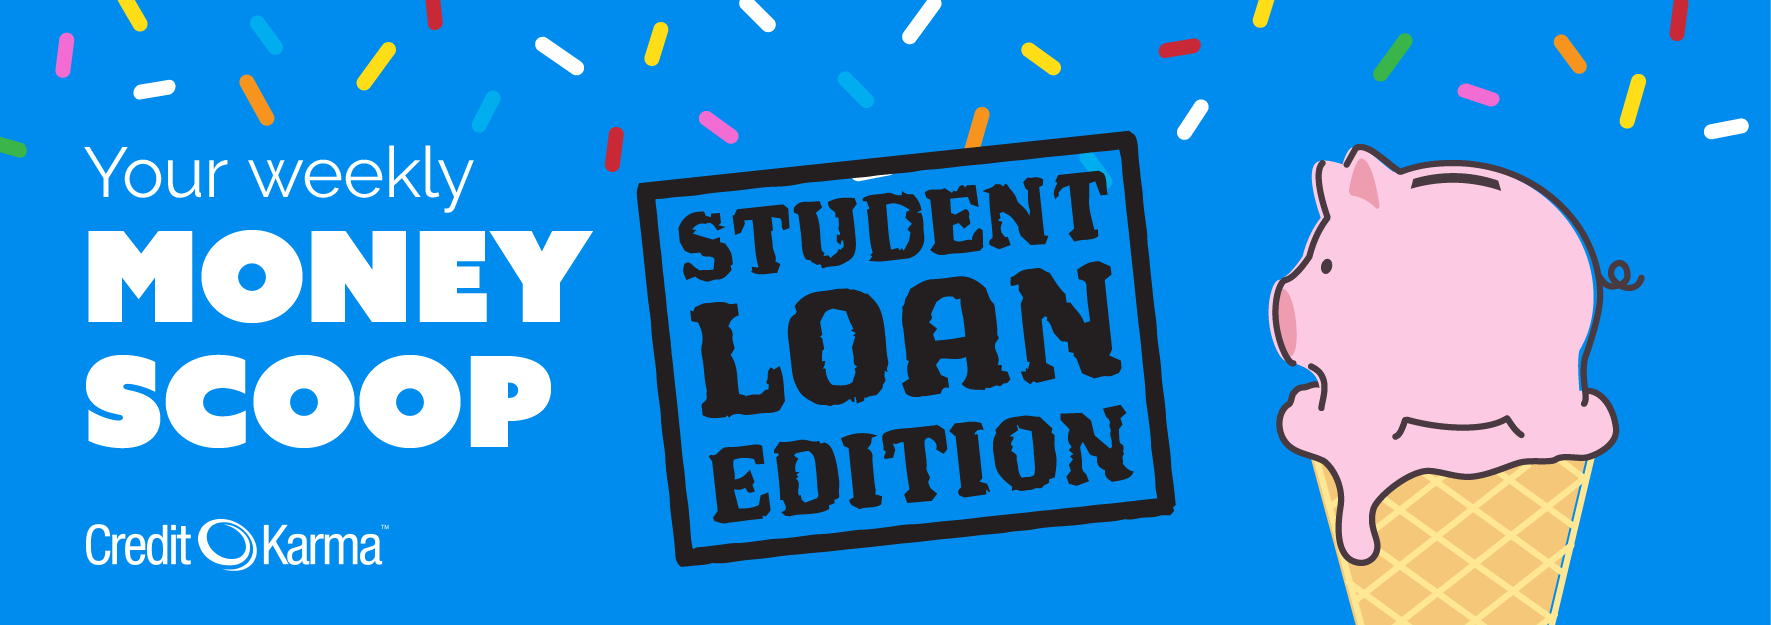 Your weekly money scoop: Student loan edition